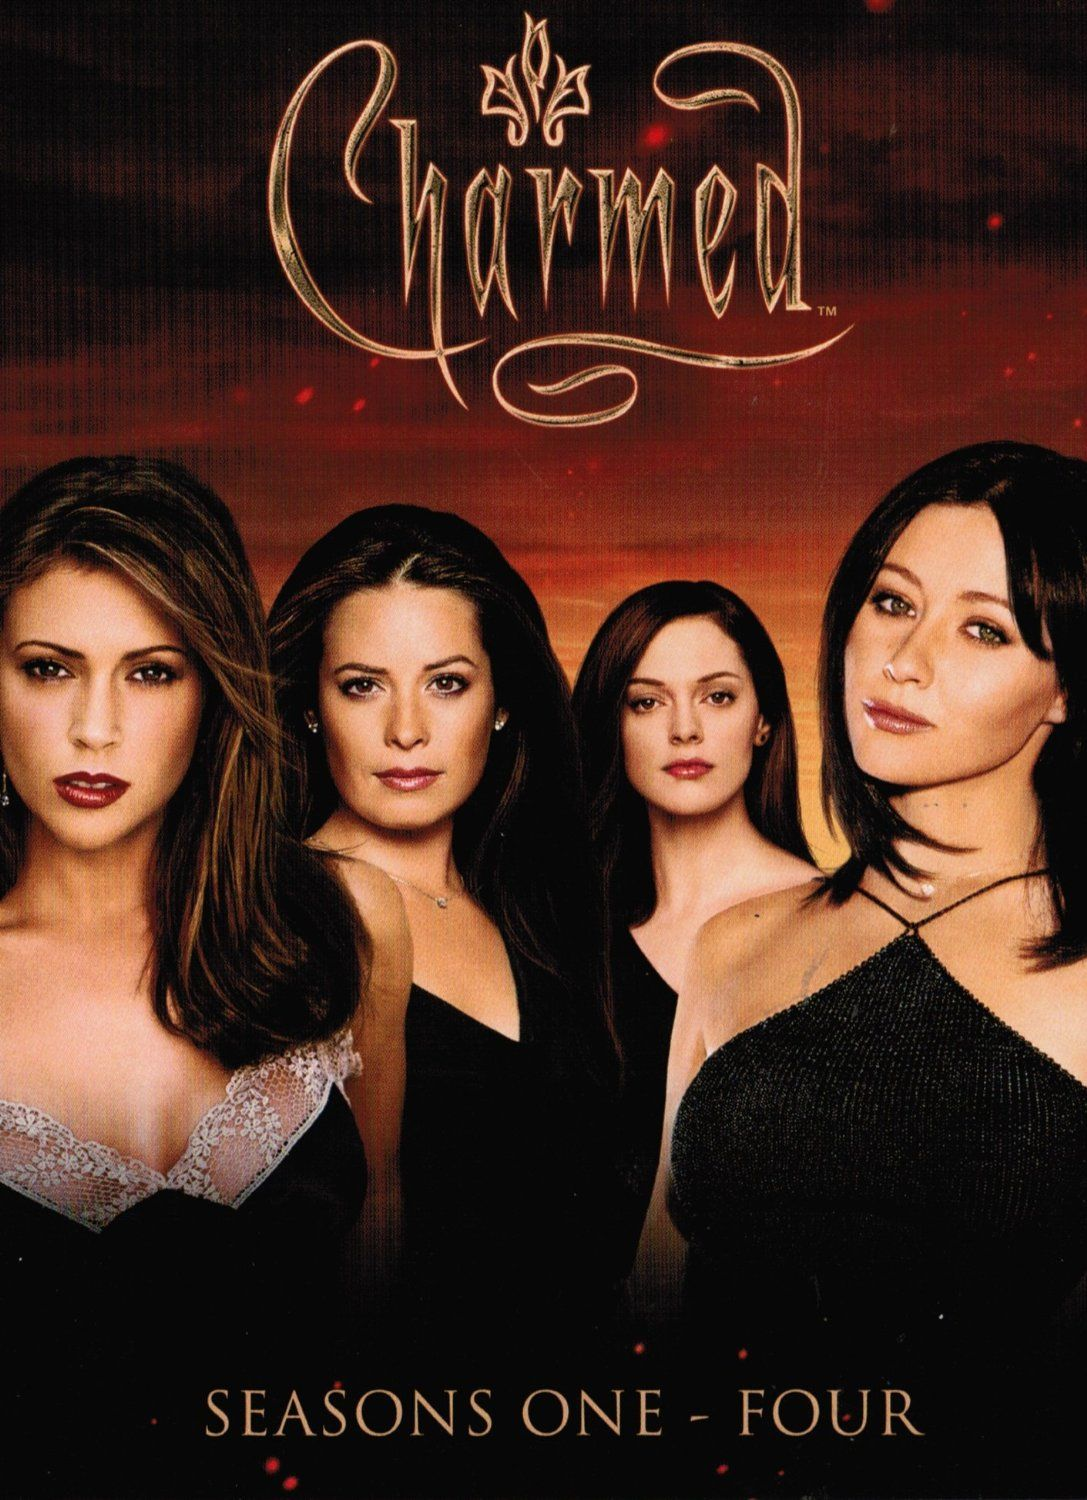 Robot Check Charmed Tv Show Charmed Tv Charmed Sisters